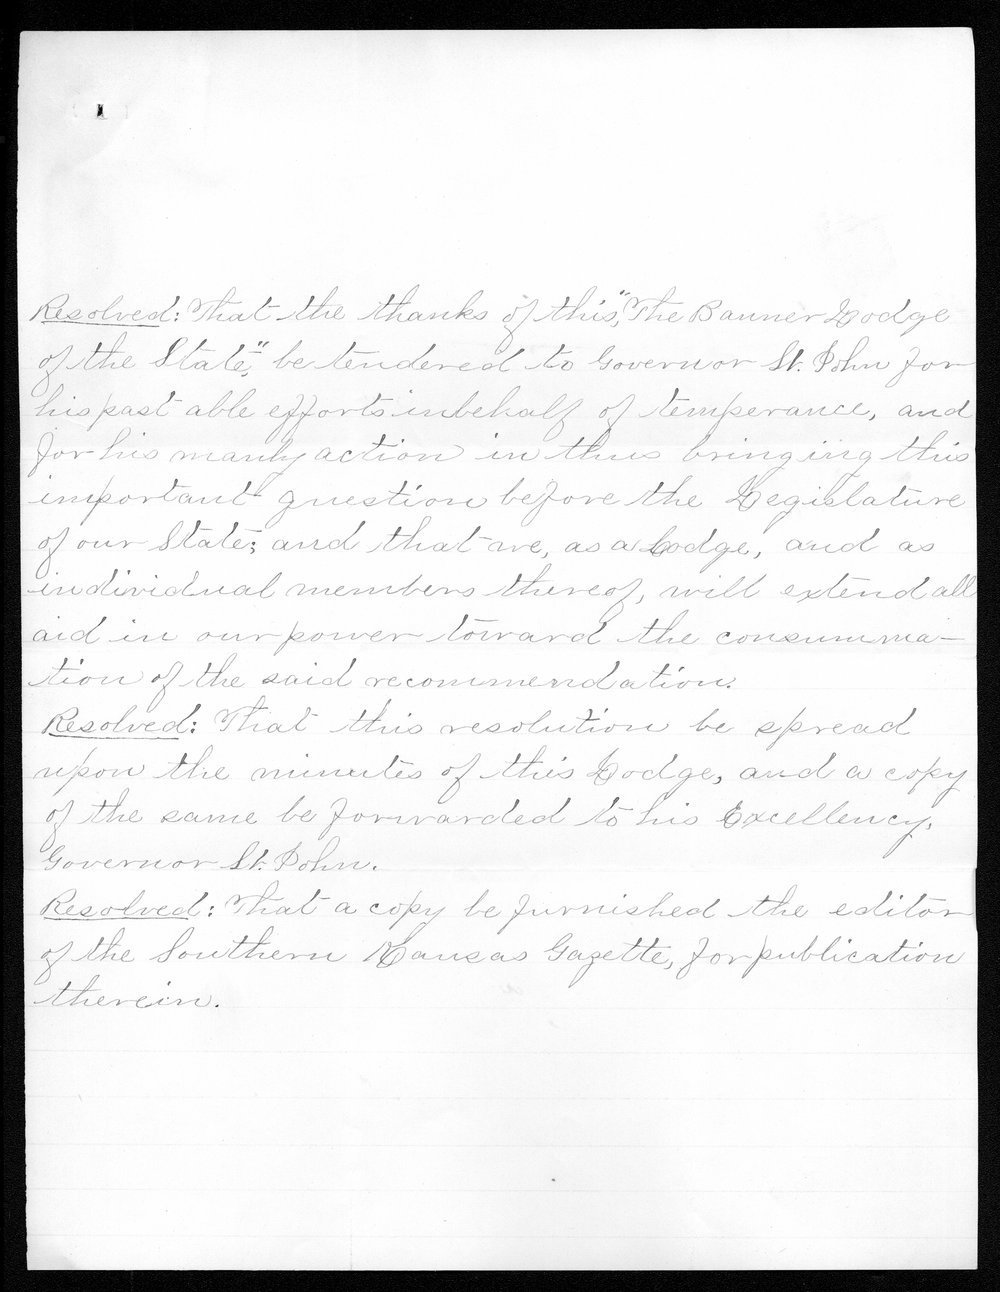 Governor John St. John prohibition received correspondence - 12